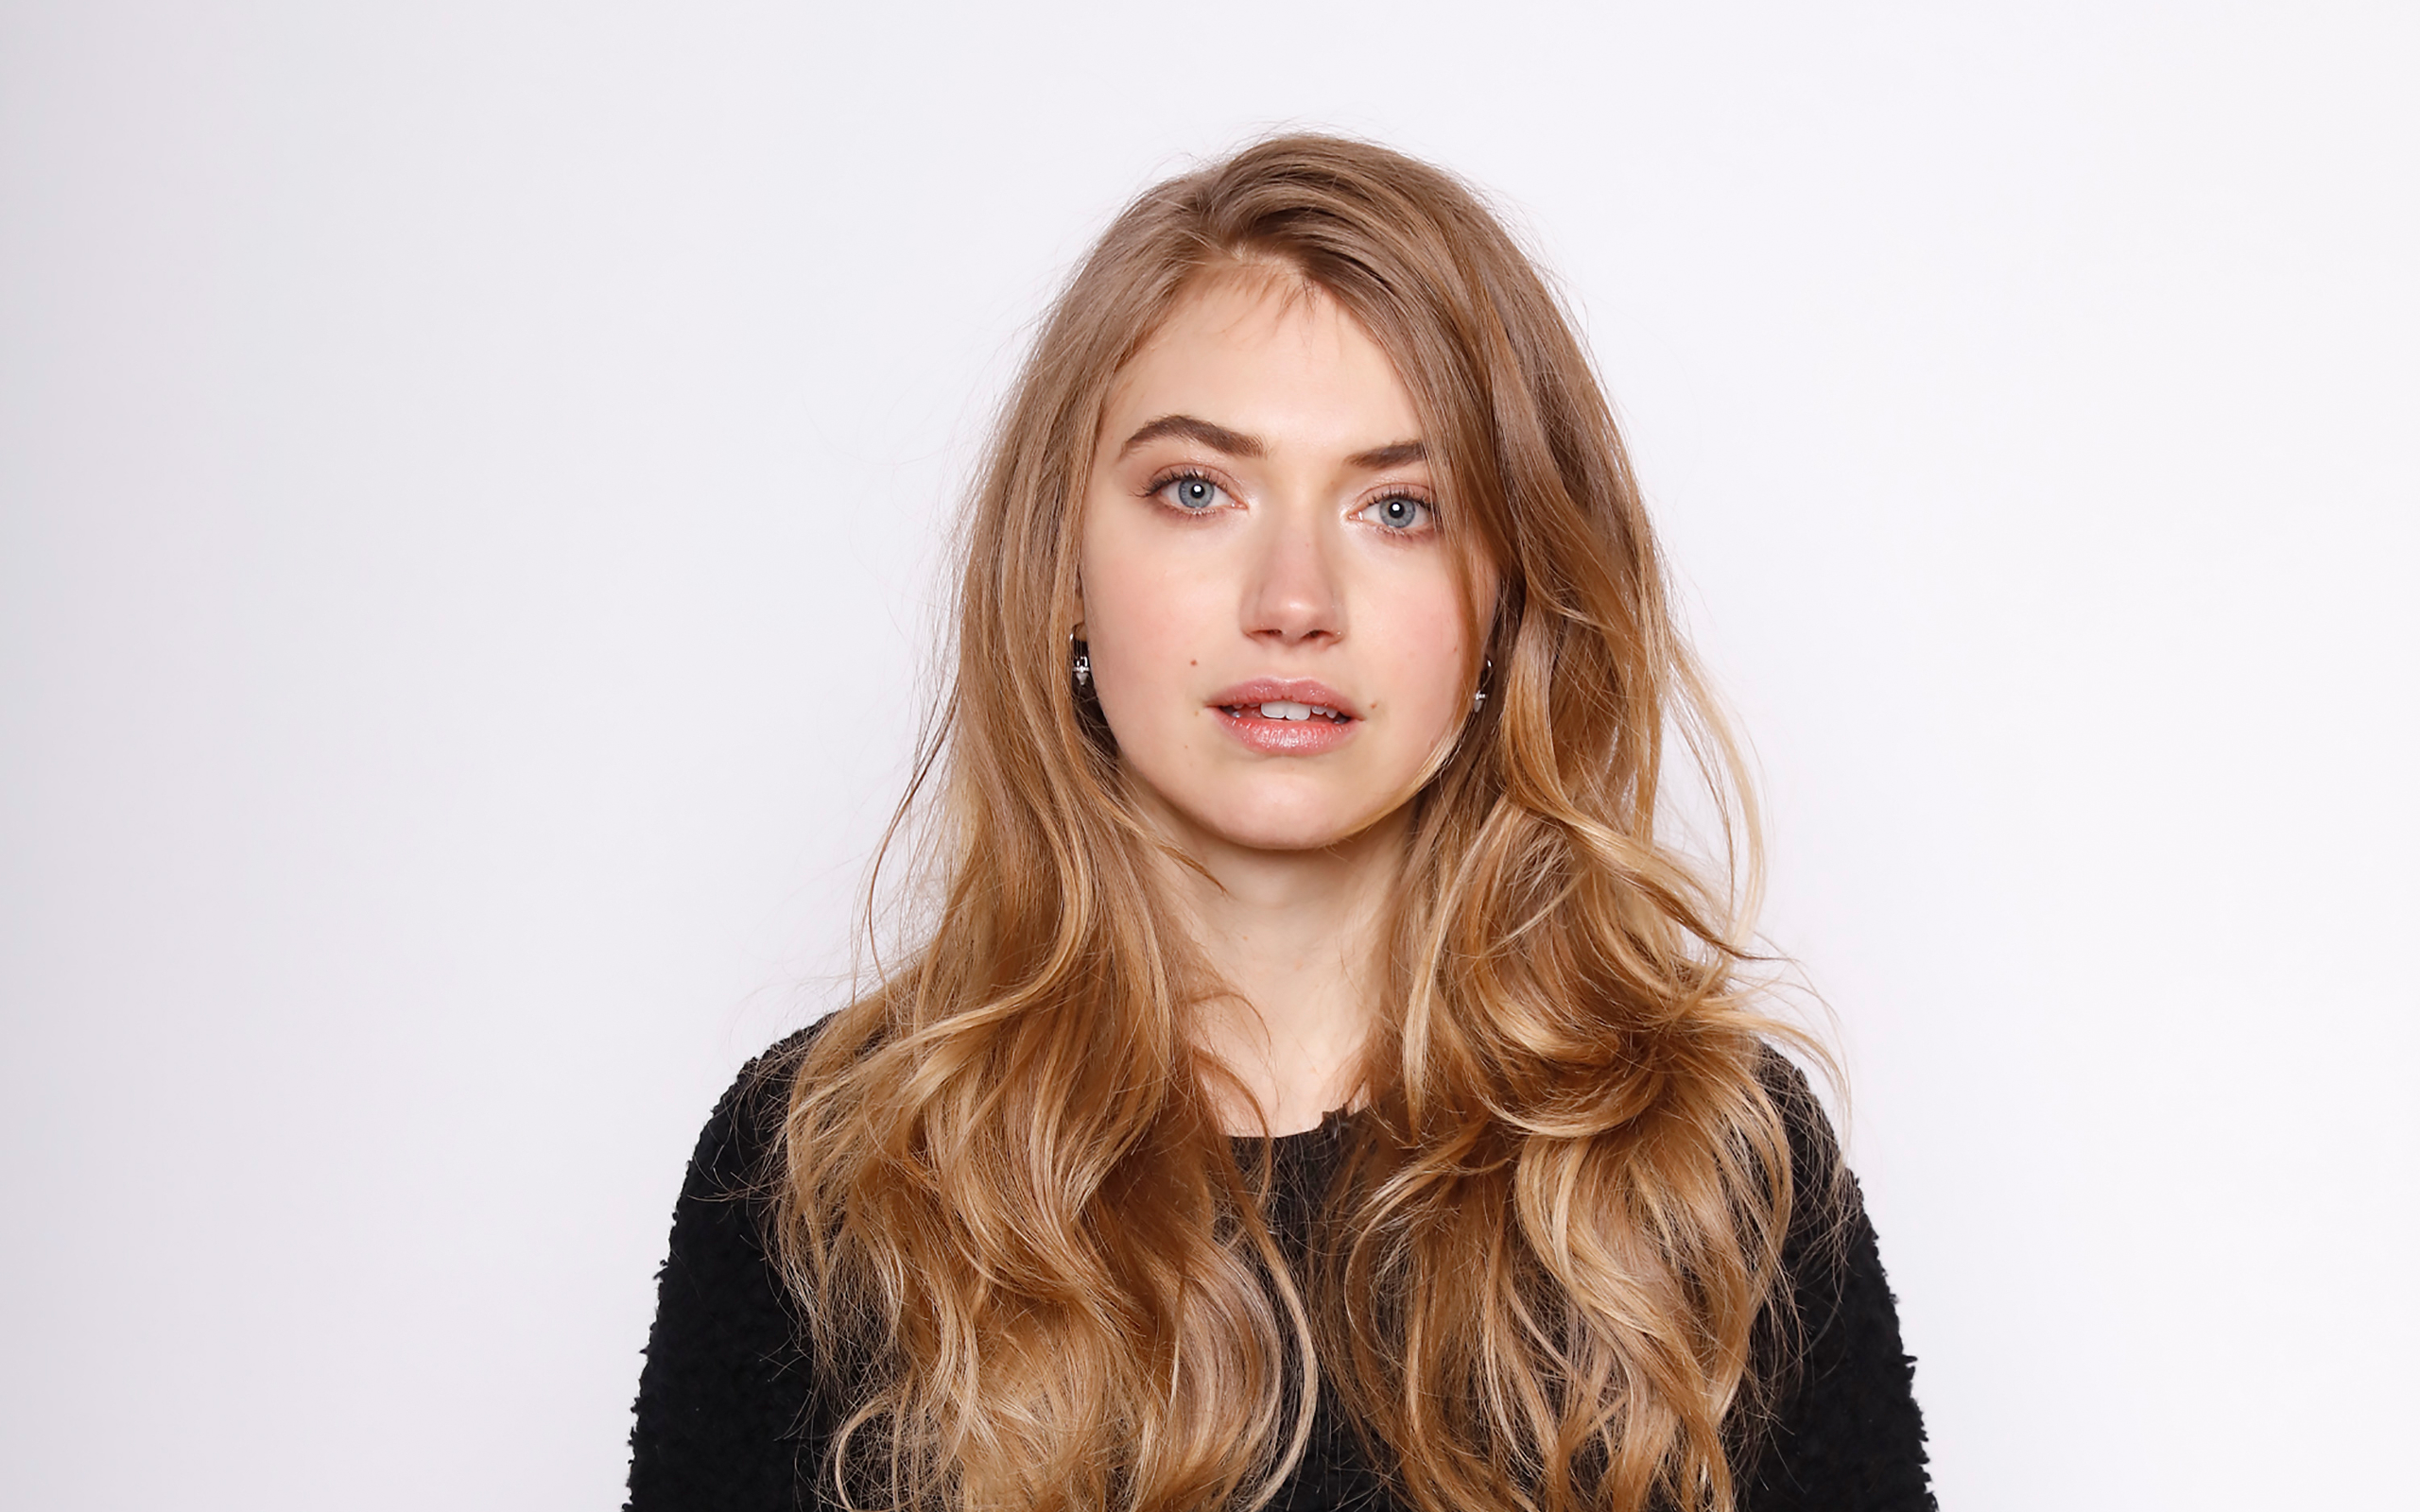 Imogen Poots Full HD Wallpaper and Background Image ...